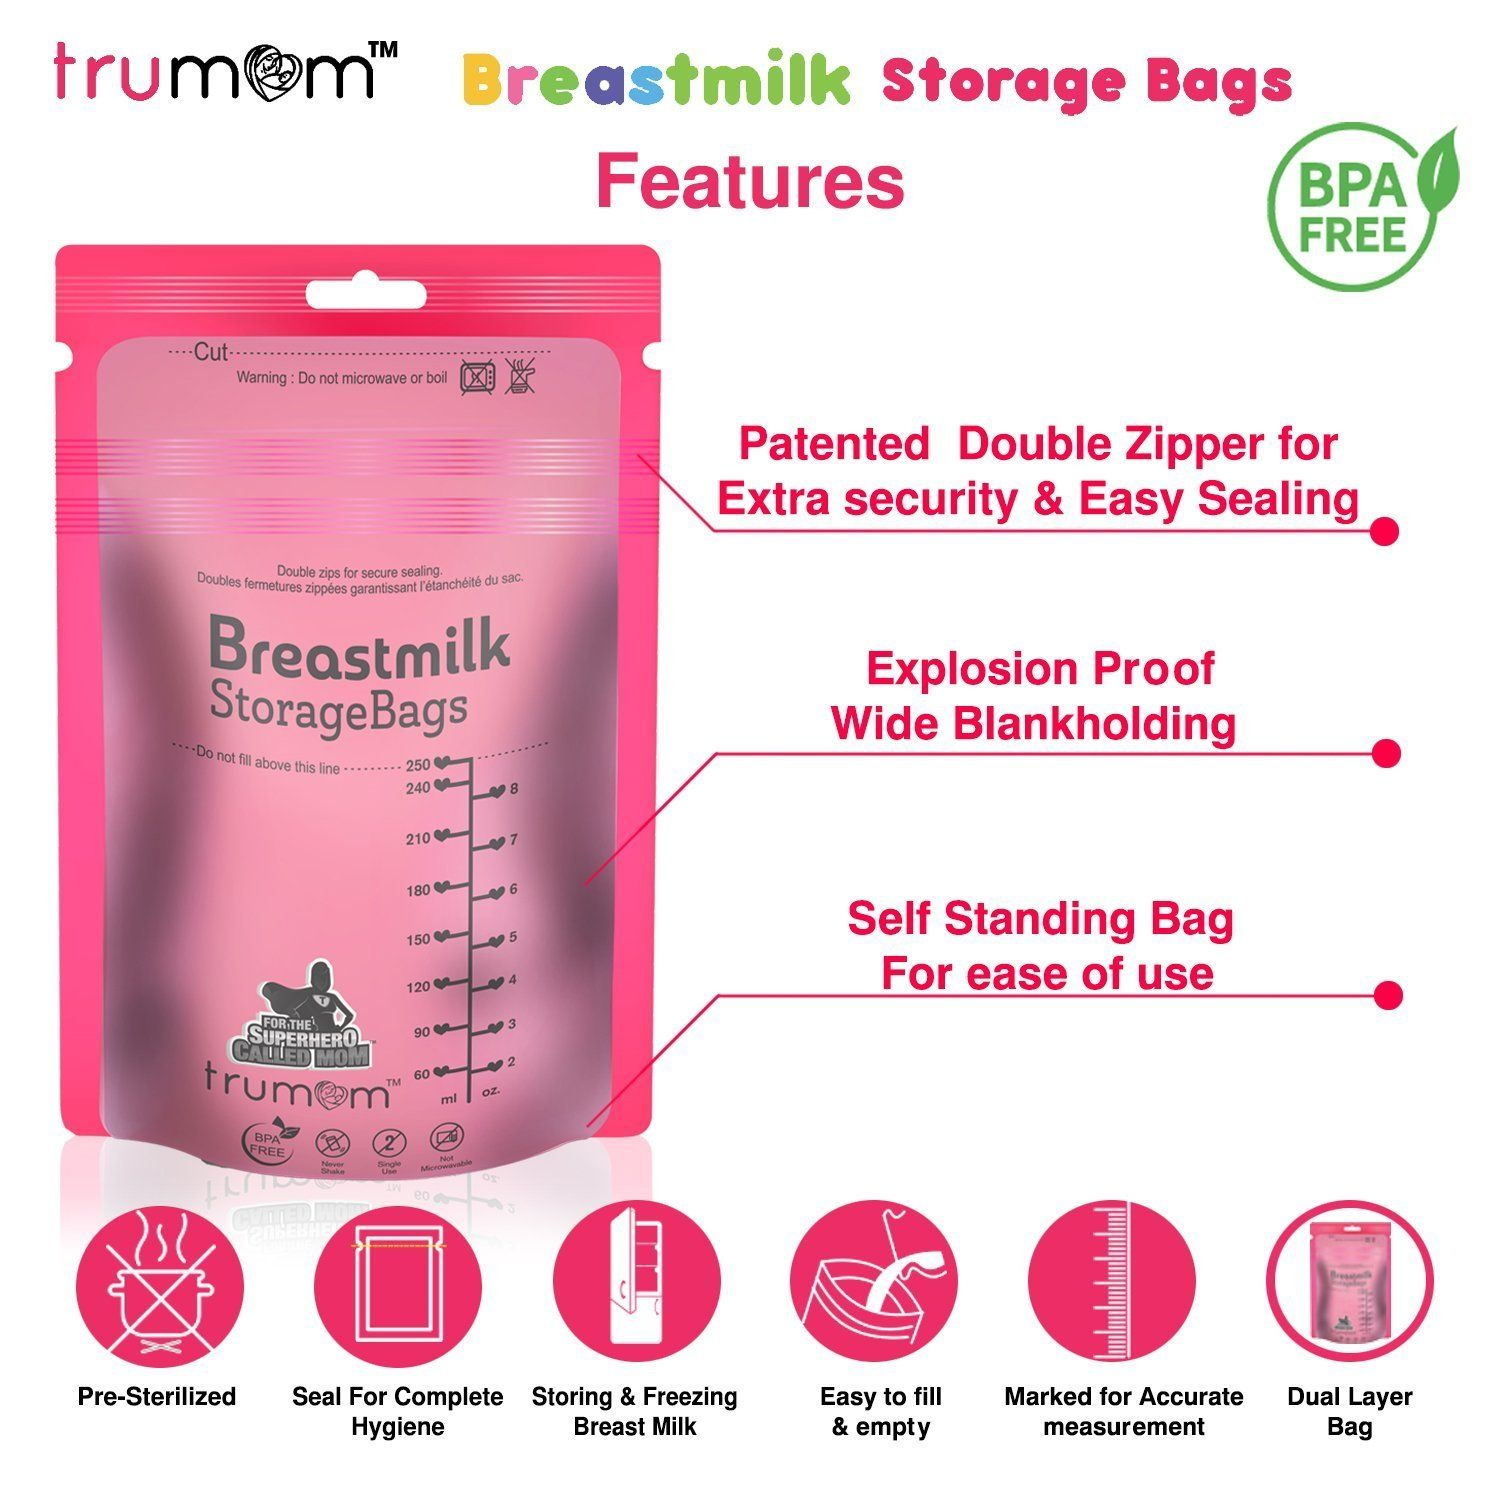 Trumom Breast Milk storage bags - trumom